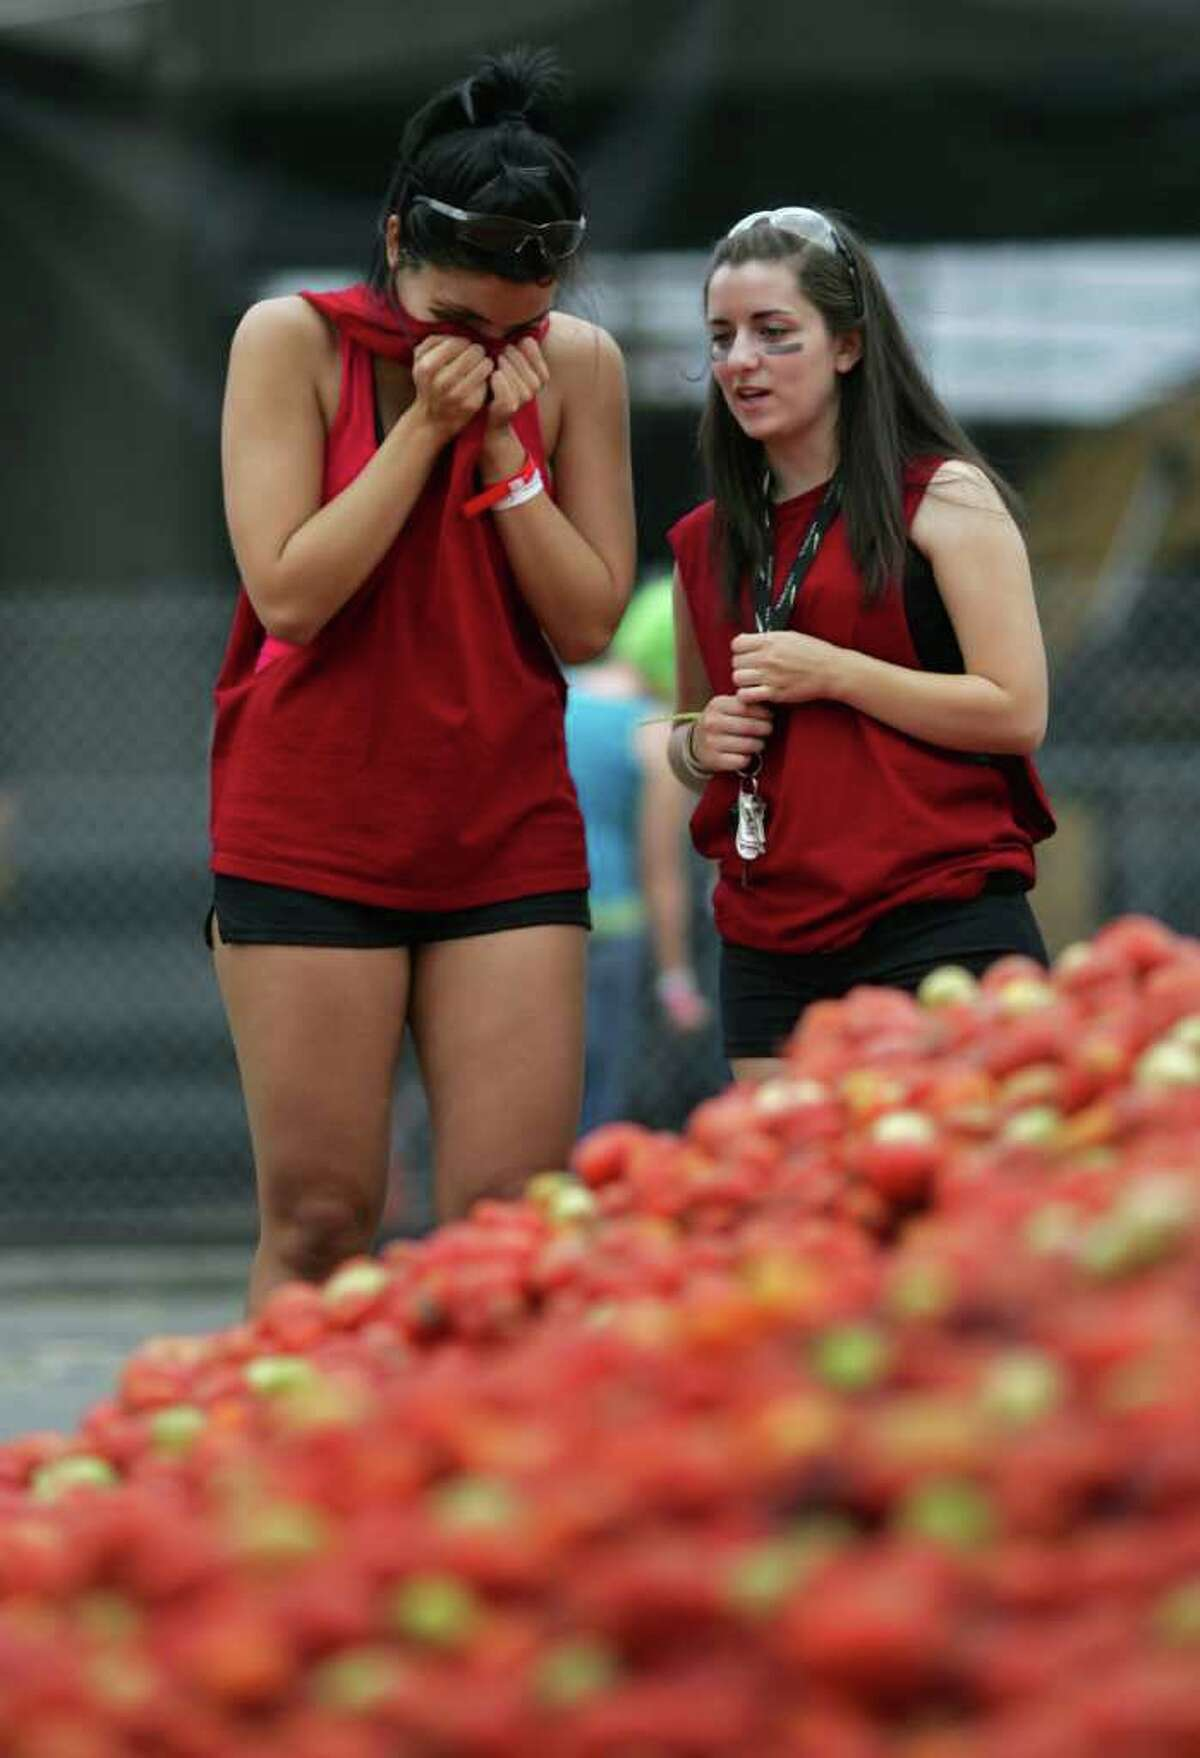 Alex Gramling, 21, left, covers her nose against the smell of 300,000 pounds of overripe tomatoes with her friend, Laura Van Kolck.